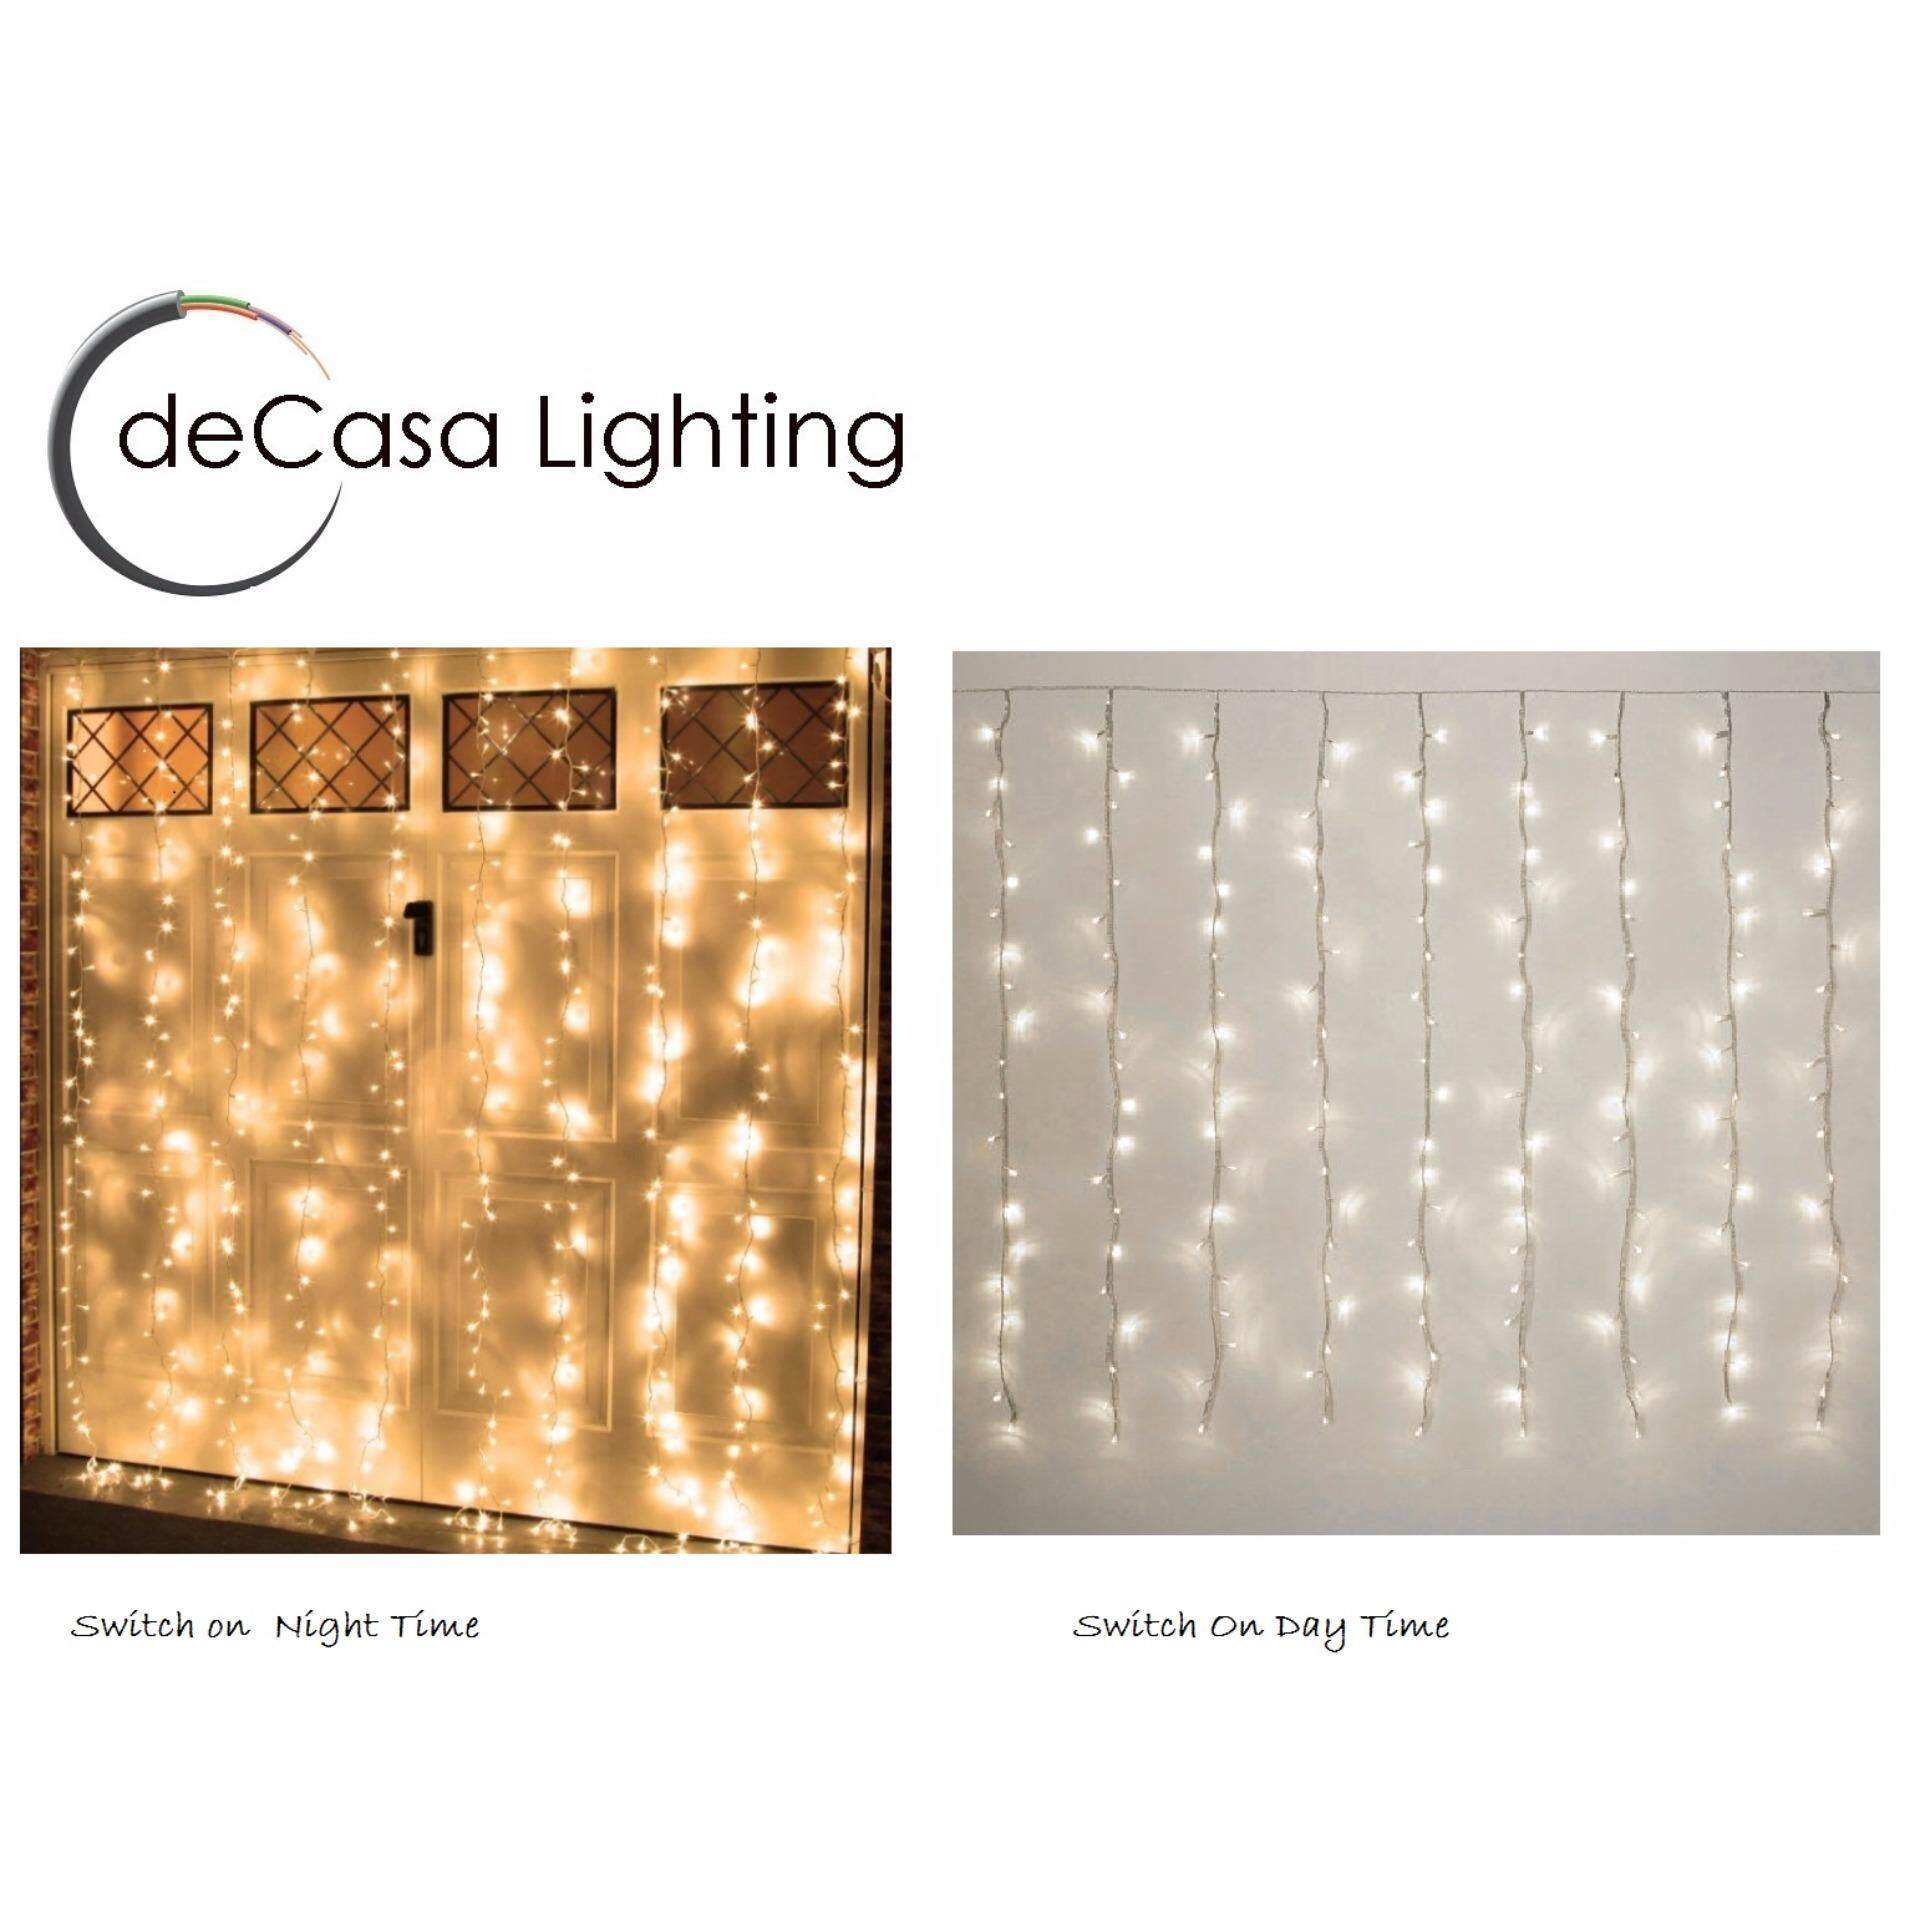 Led Fairy Light Warm White Decasa Fairy Light 2meter x 2meter